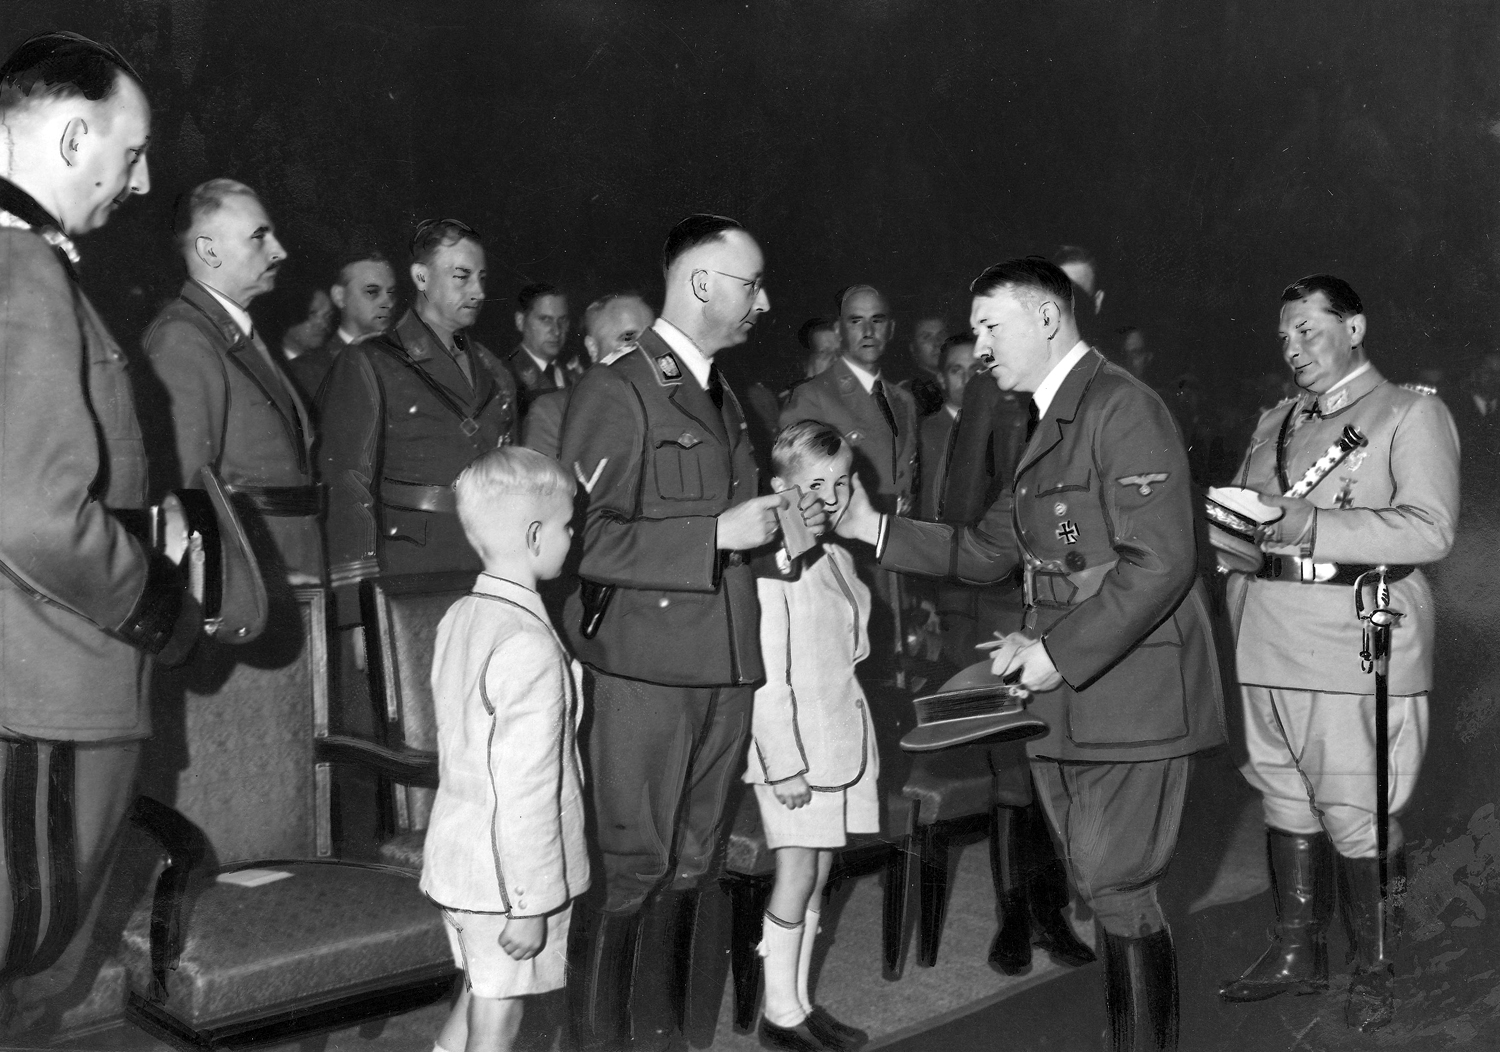 Adolf Hitler with the 2 sons of Reinhard Heydrich at his funeral